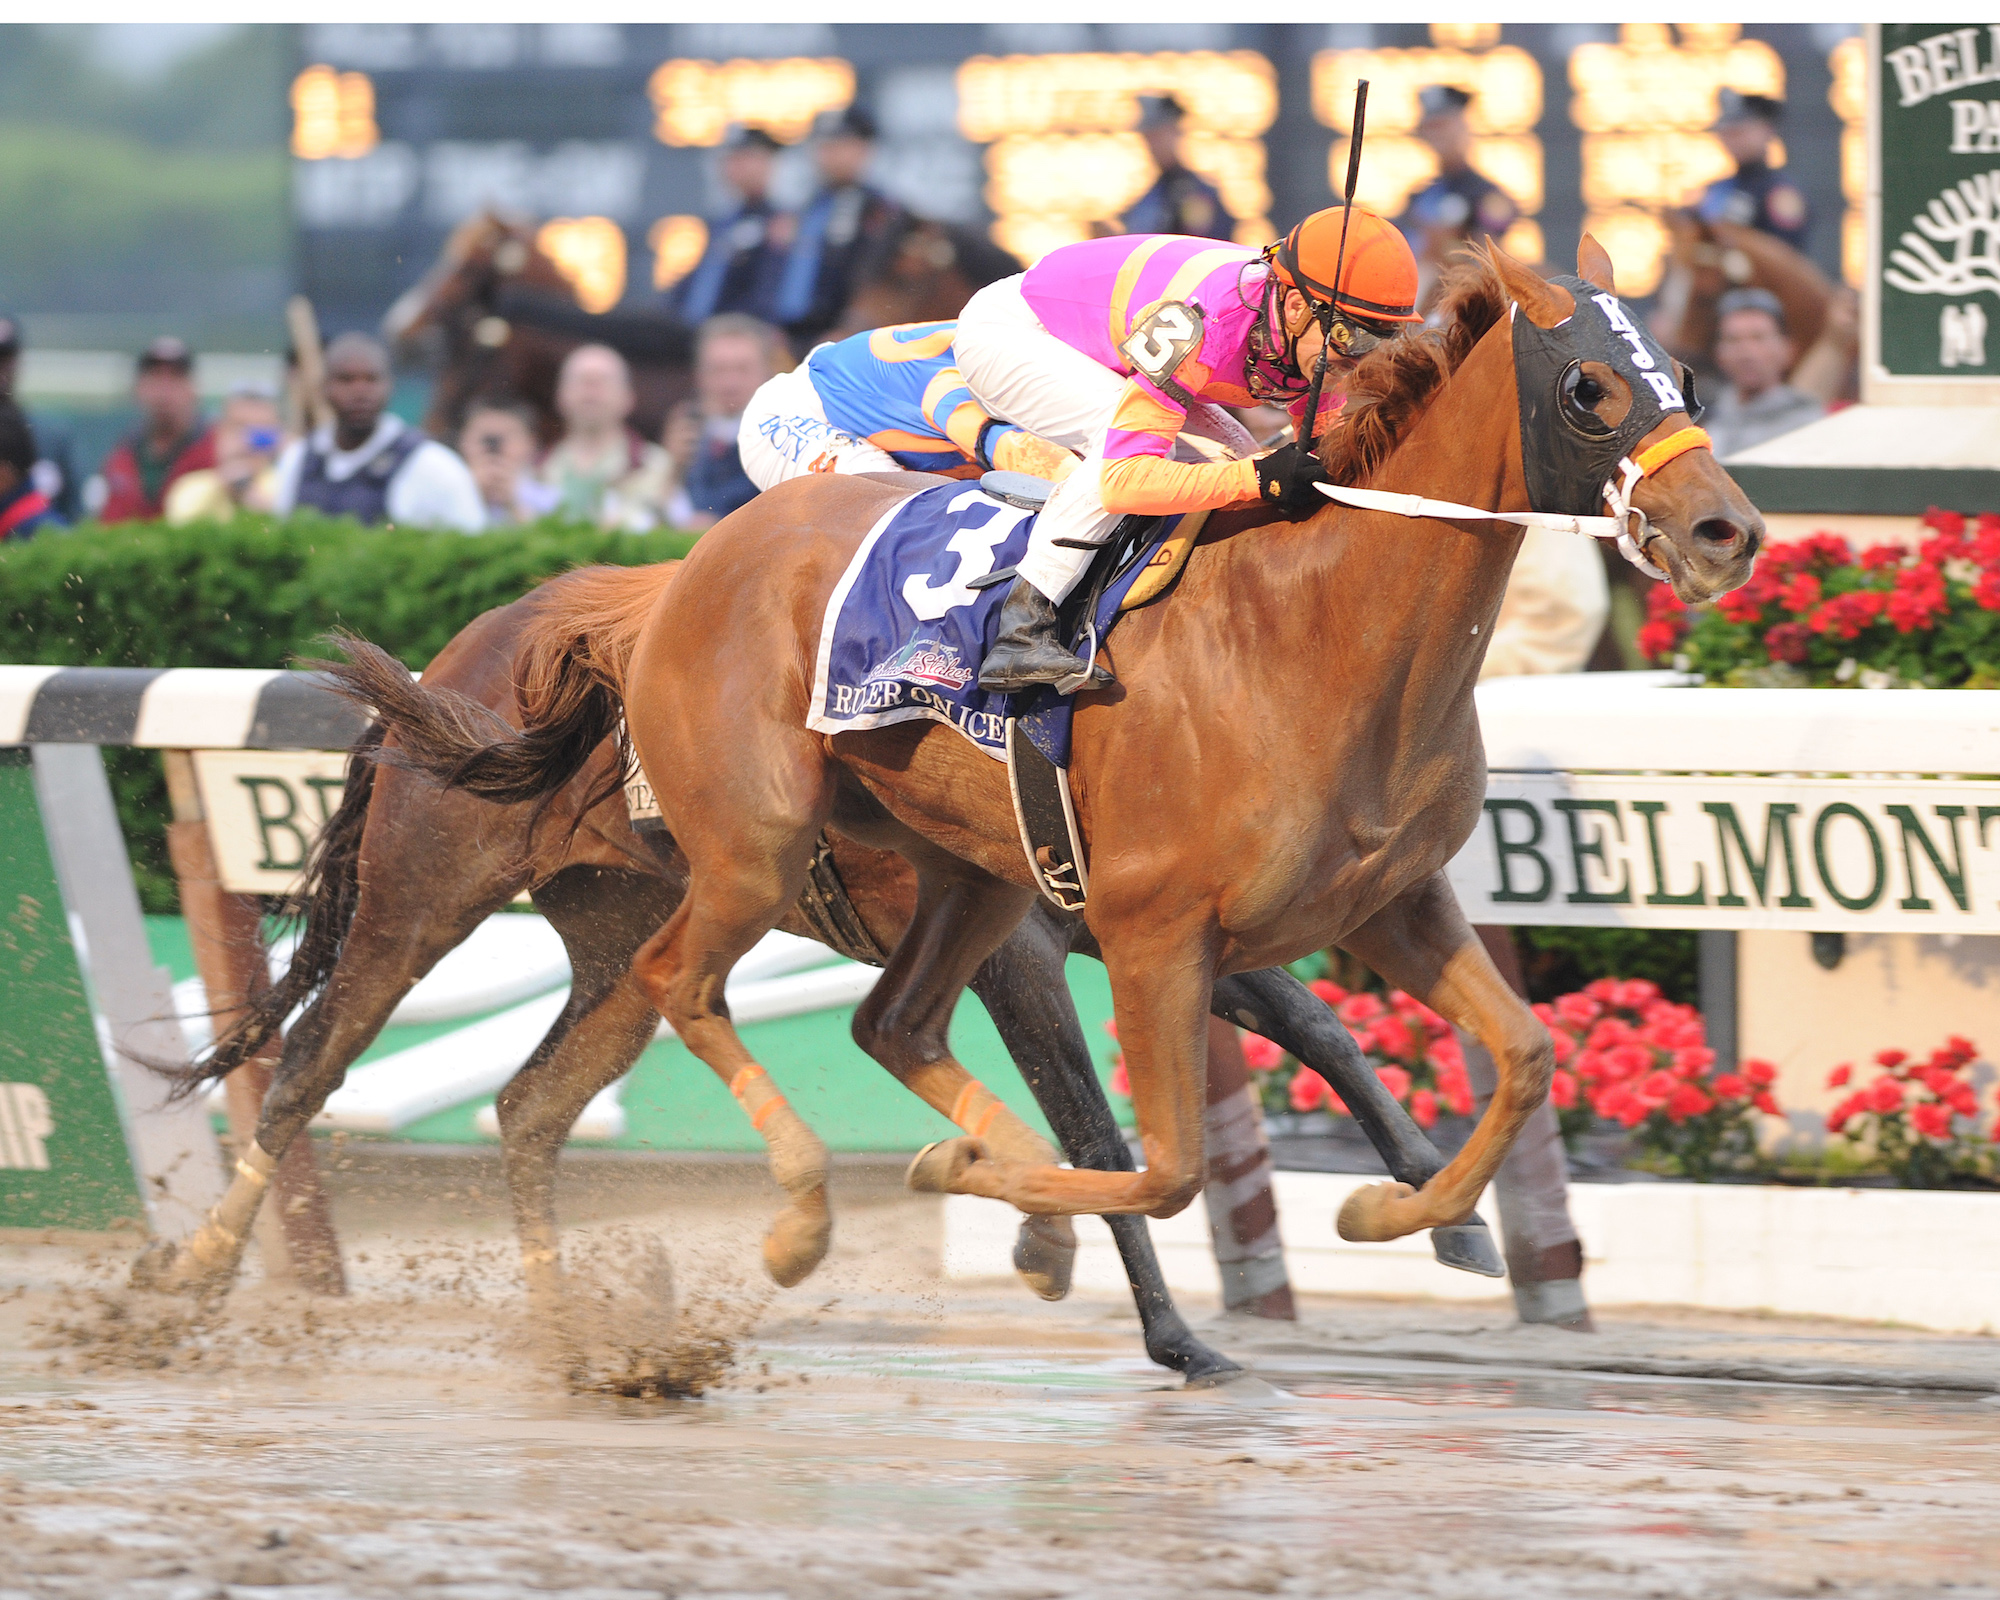 Ruler On Ice winning the Belmont Stakes in 2011. Photo: NYRA.com